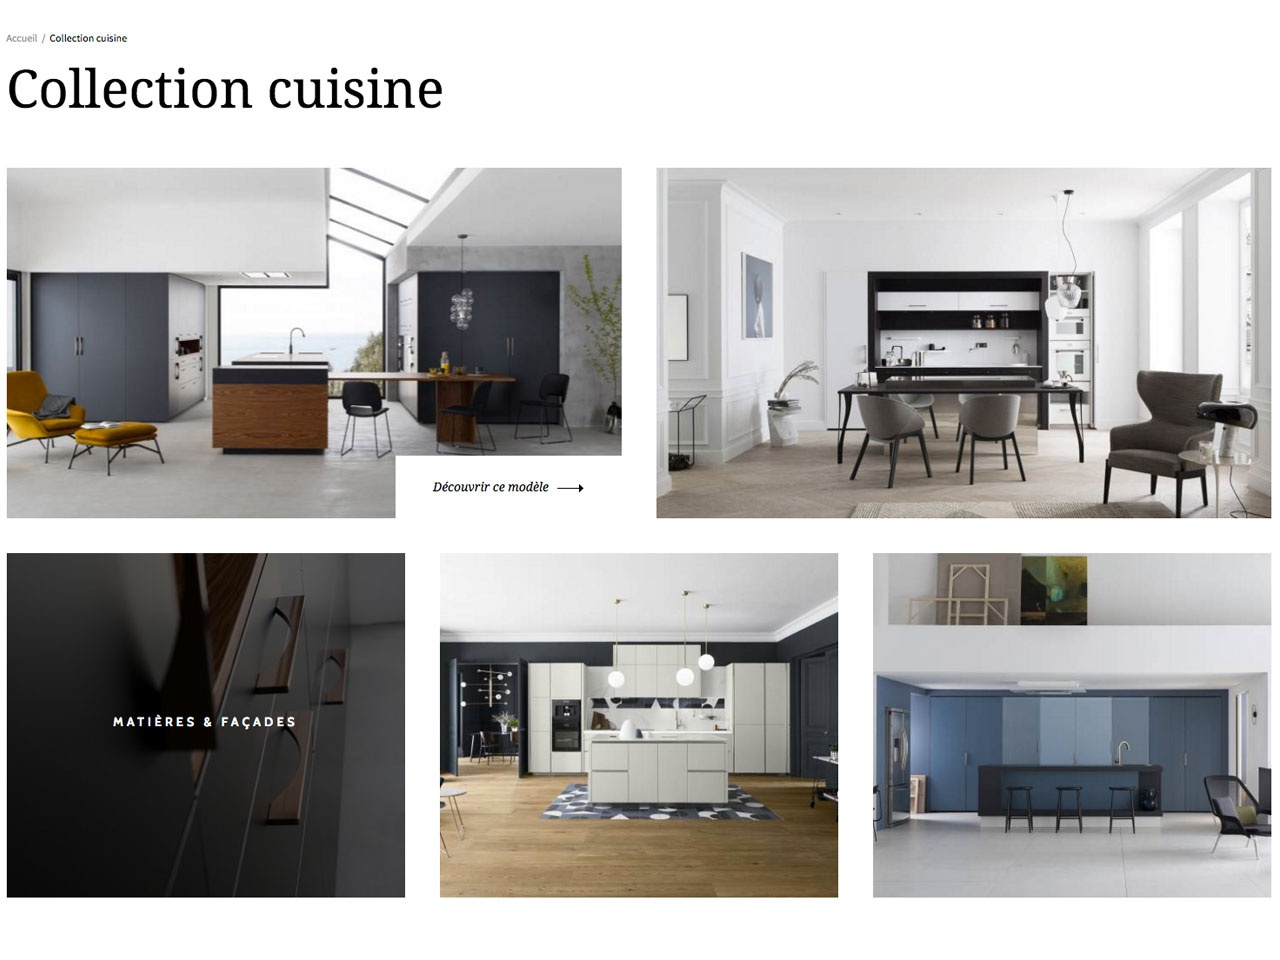 Univers habitat march cuisine nouveau site internet for Article pour cuisine